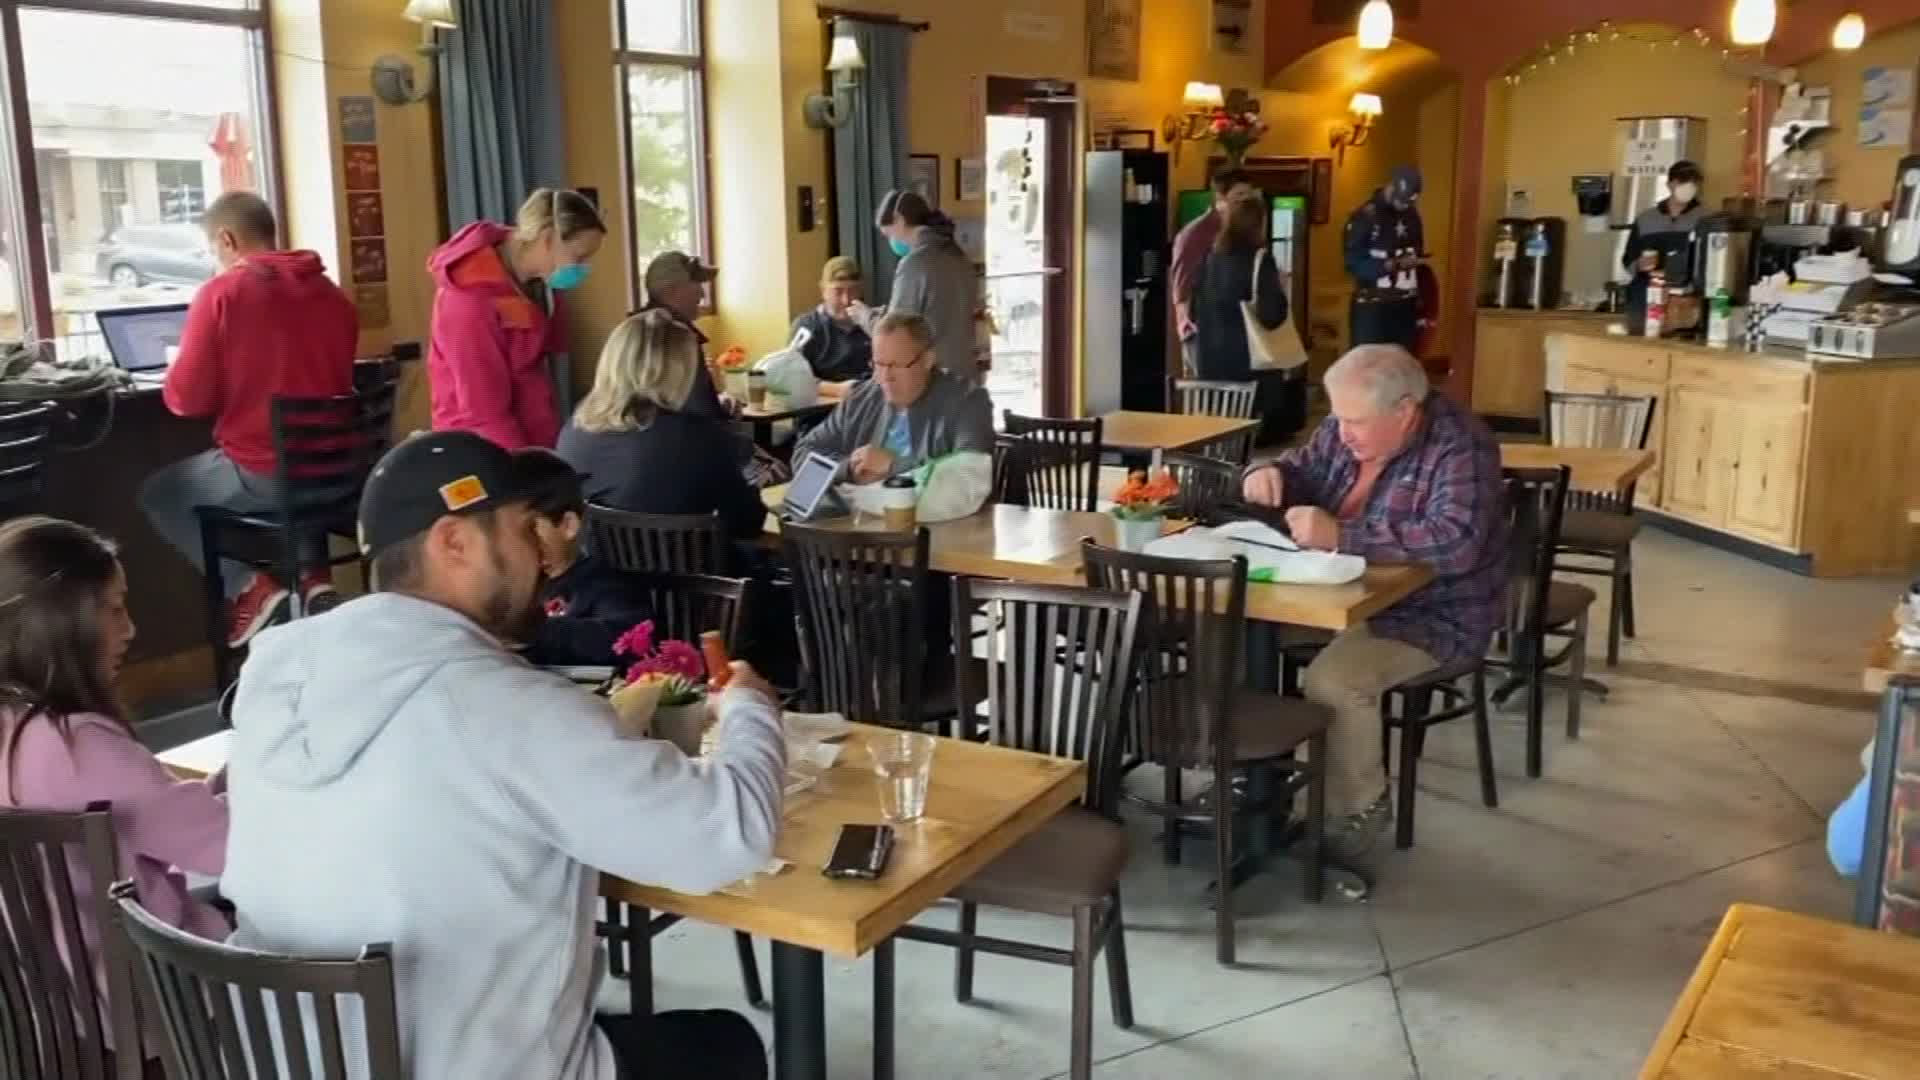 An image taken from video shows many people, mostly without masks, crowded into a Colorado restaurant on Mothers Day. (KCNC via CNN Wire)